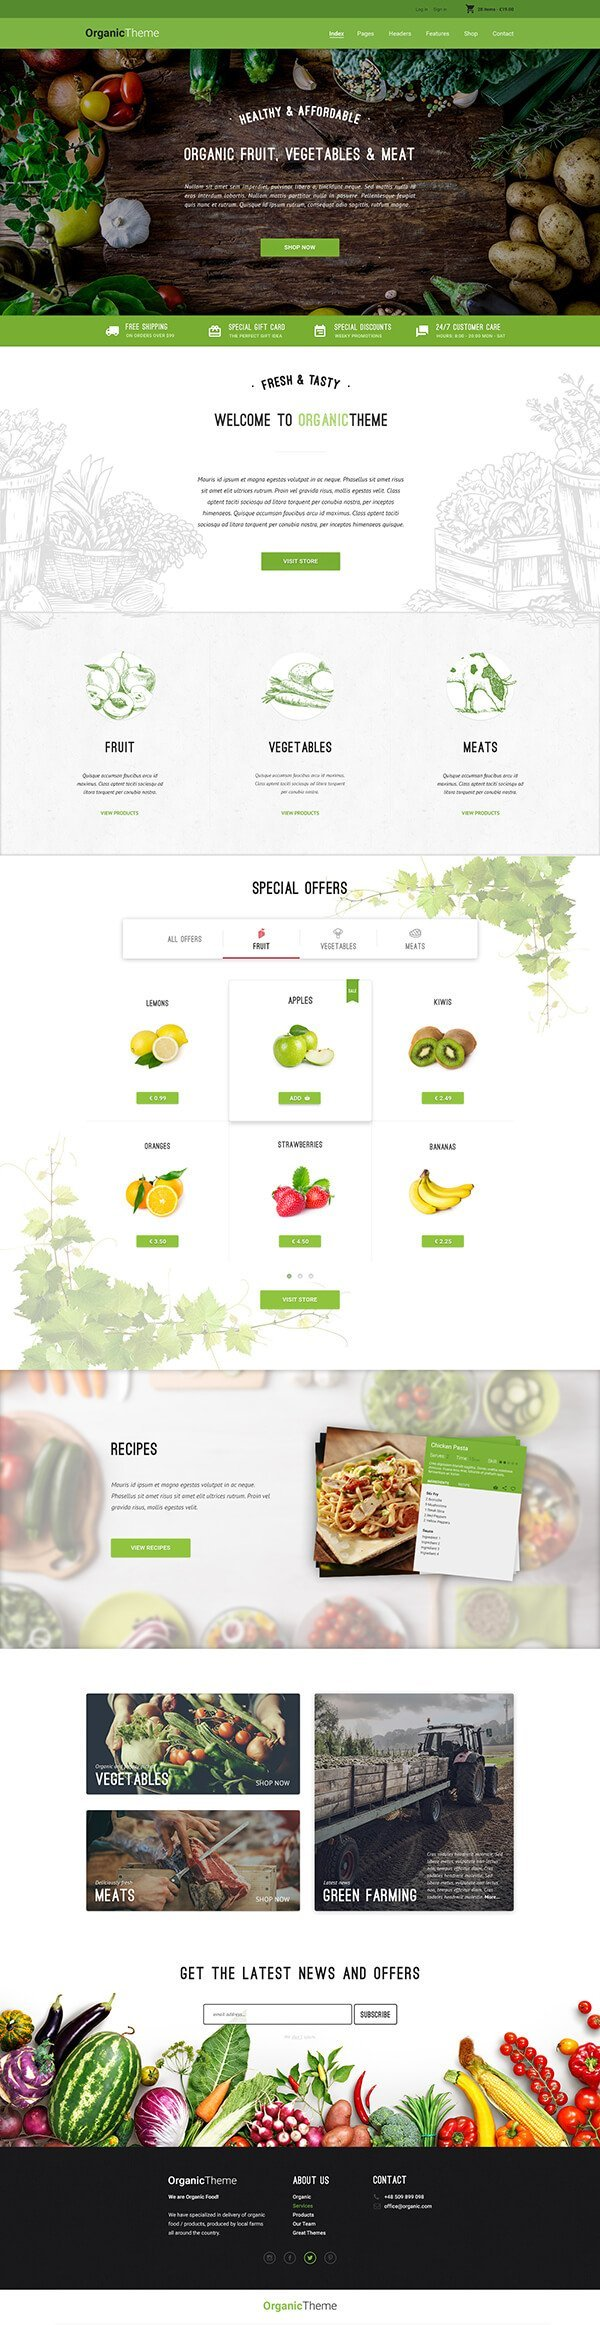 ORGANIC | Organic Farm Food WordPress Theme